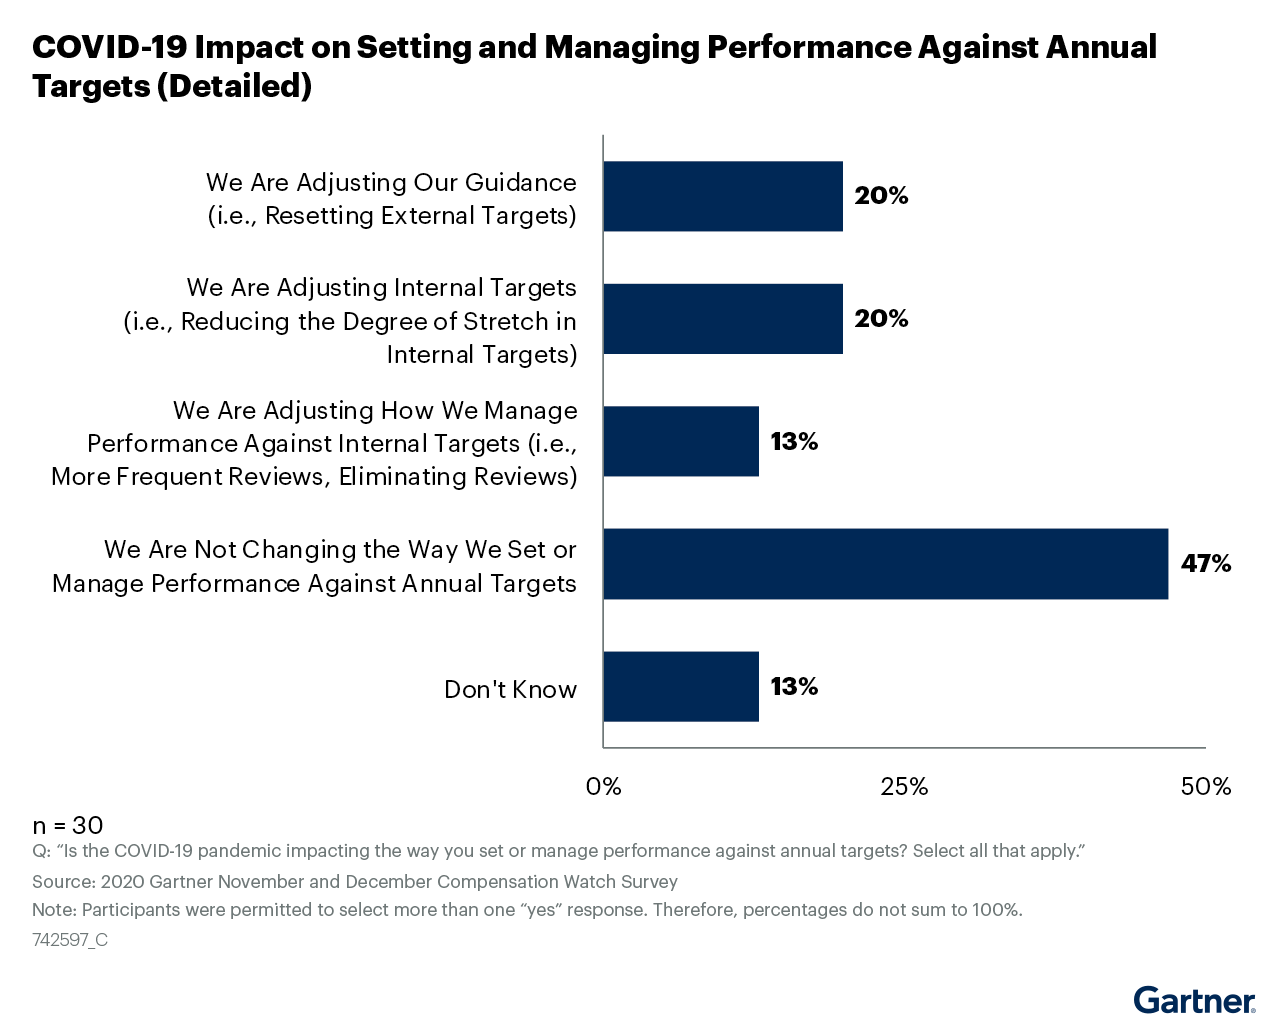 Figure 18: COVID-19 Impact on Setting and Managing Performance Against Annual Targets (Detailed)